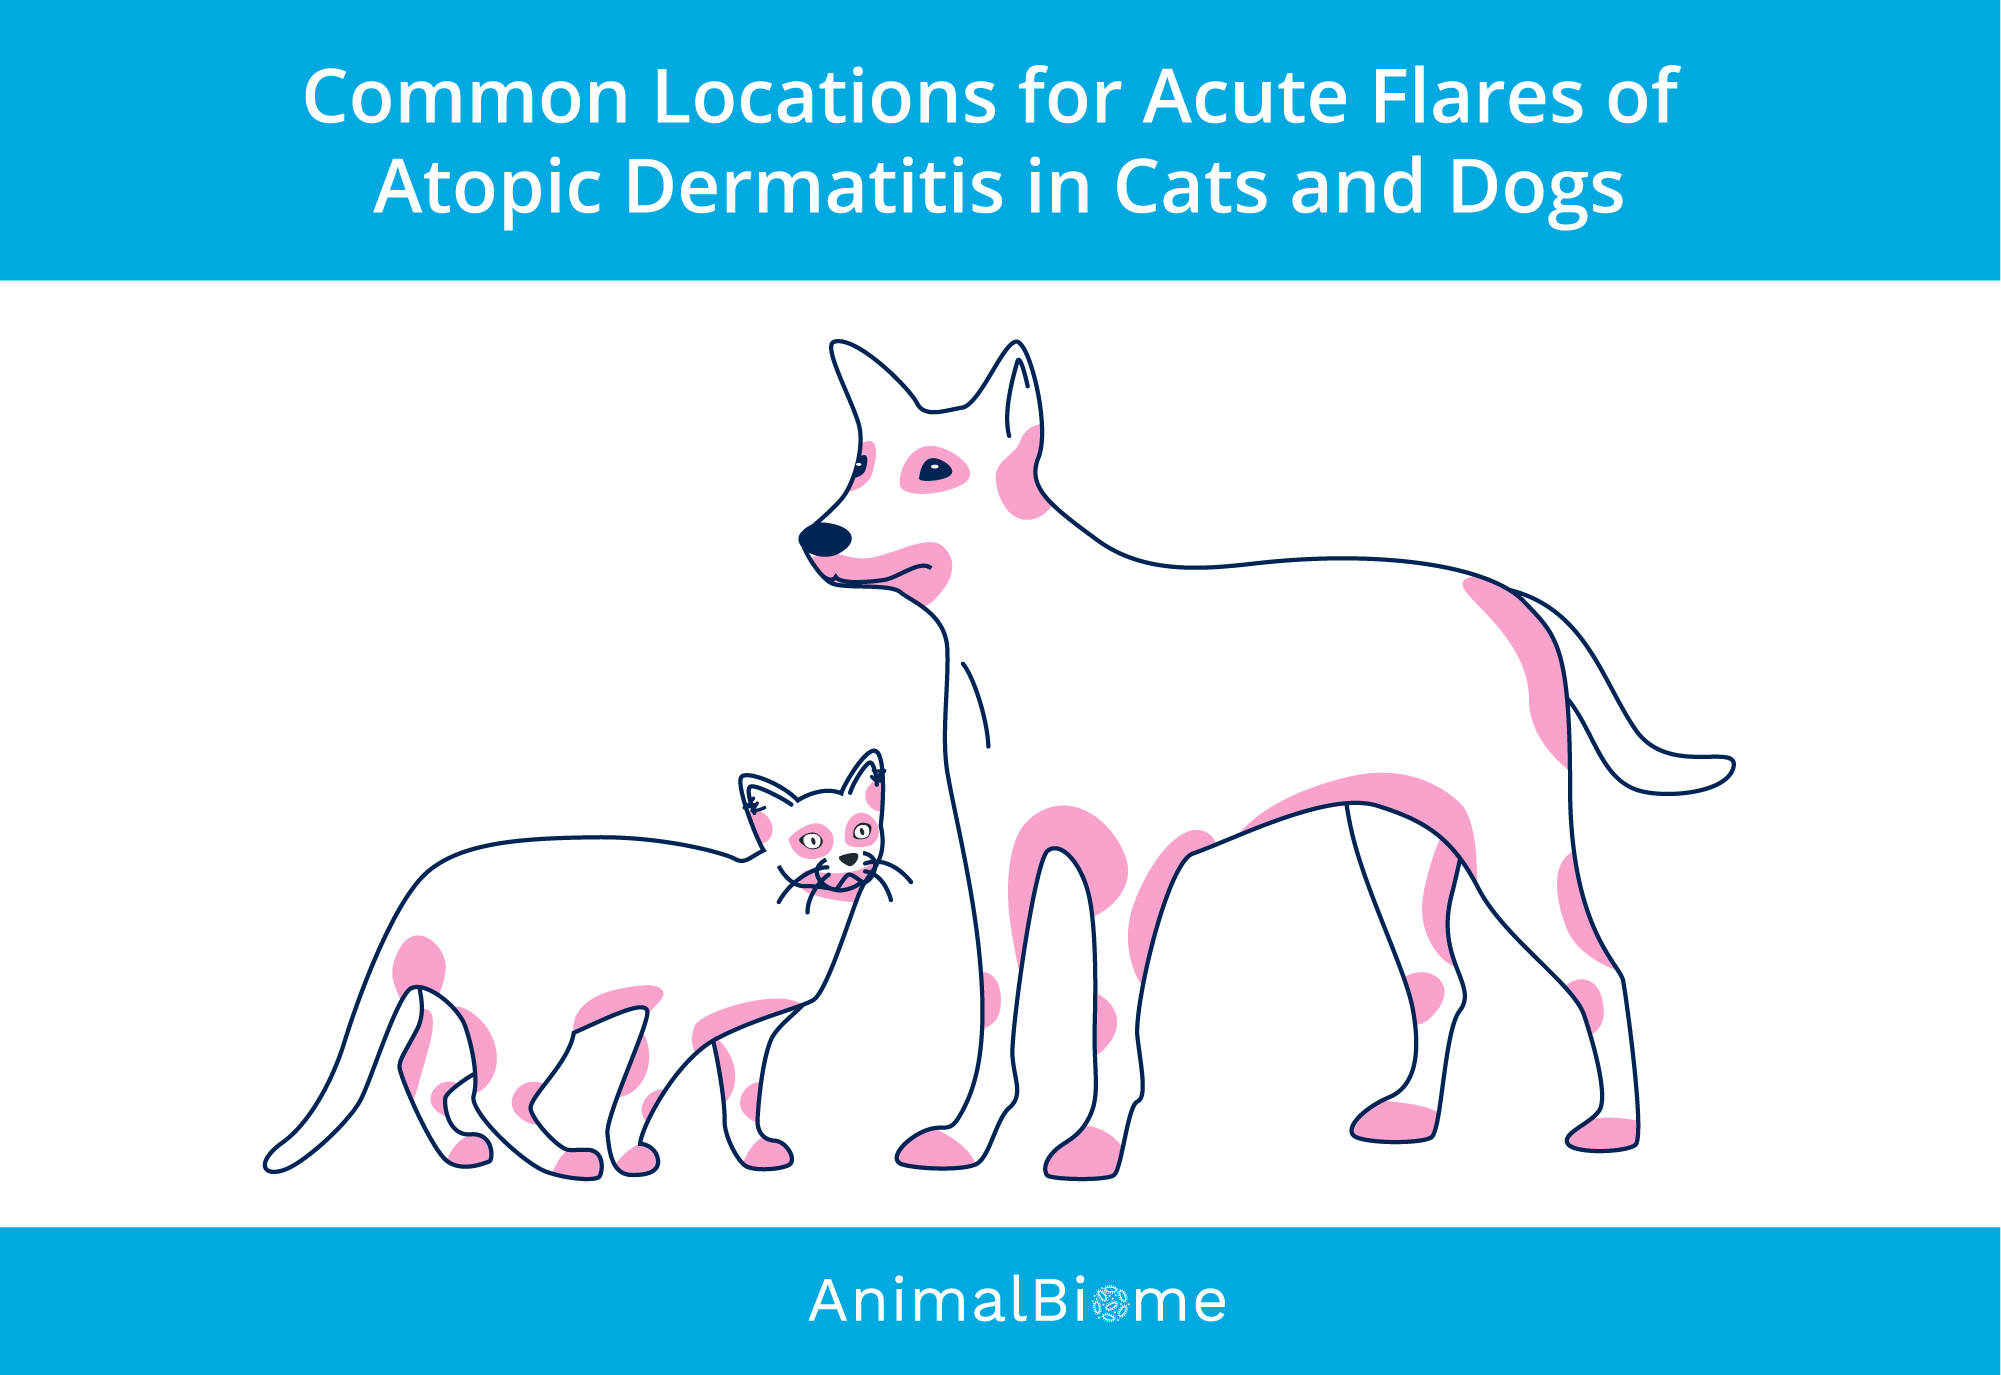 Picture of acute flares of dog atopic dermatitis and cat atopic dermatitis